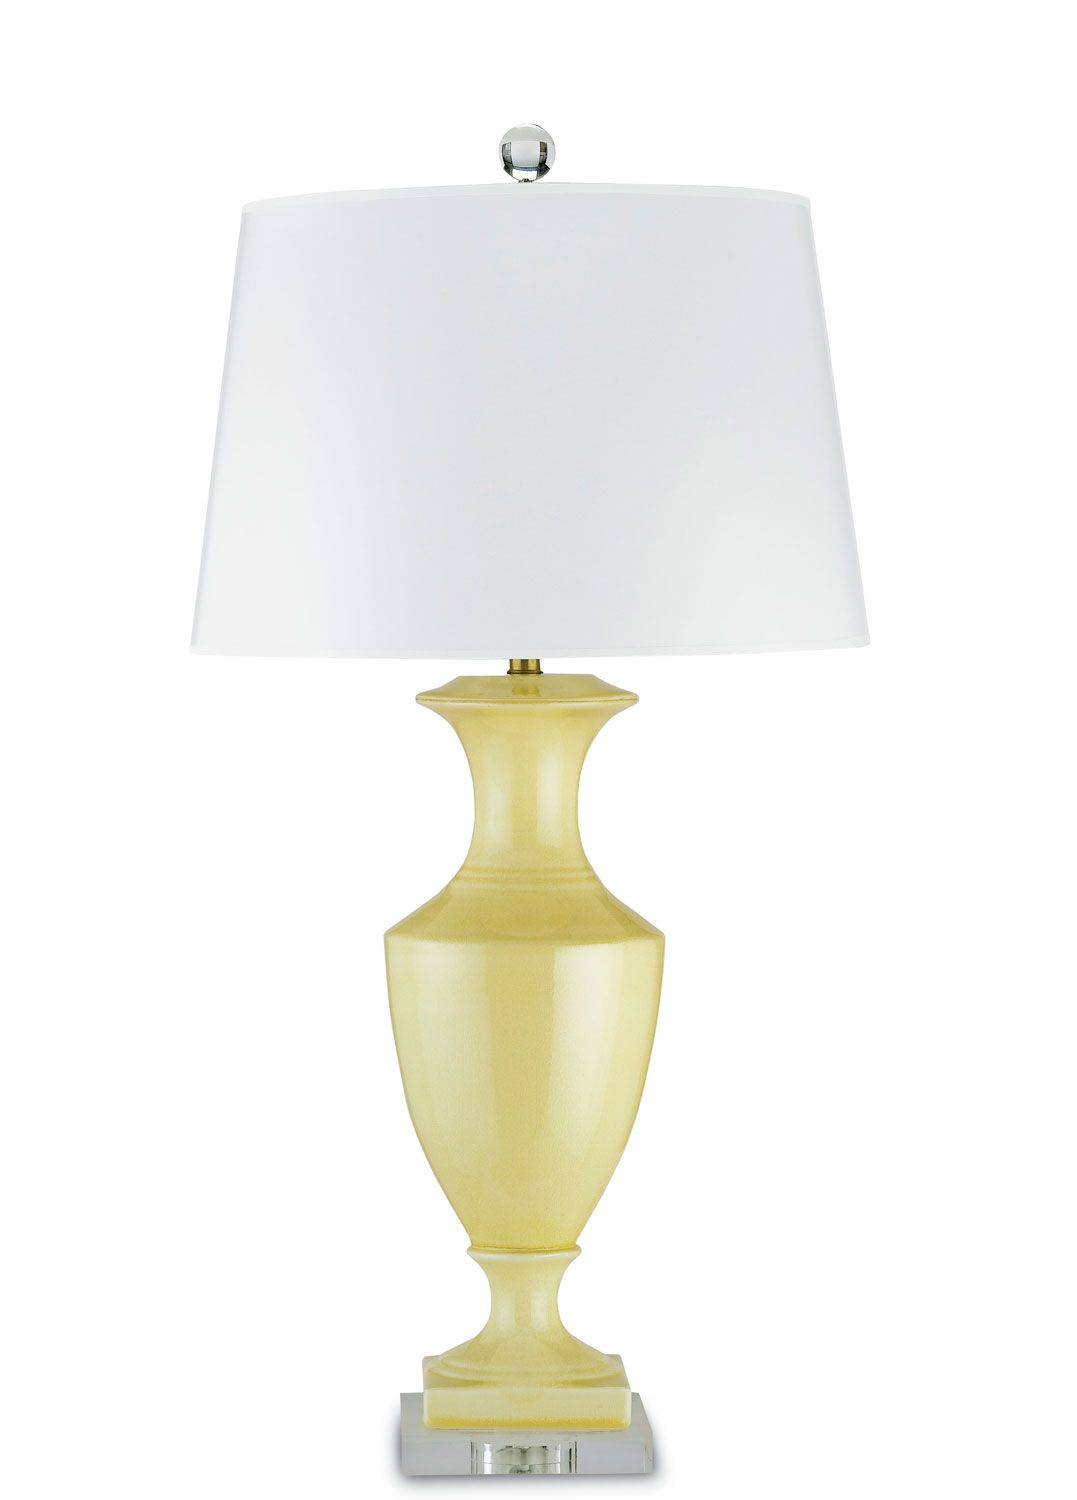 One Light Table Lamp Table Lamp Sofa Table Lamp